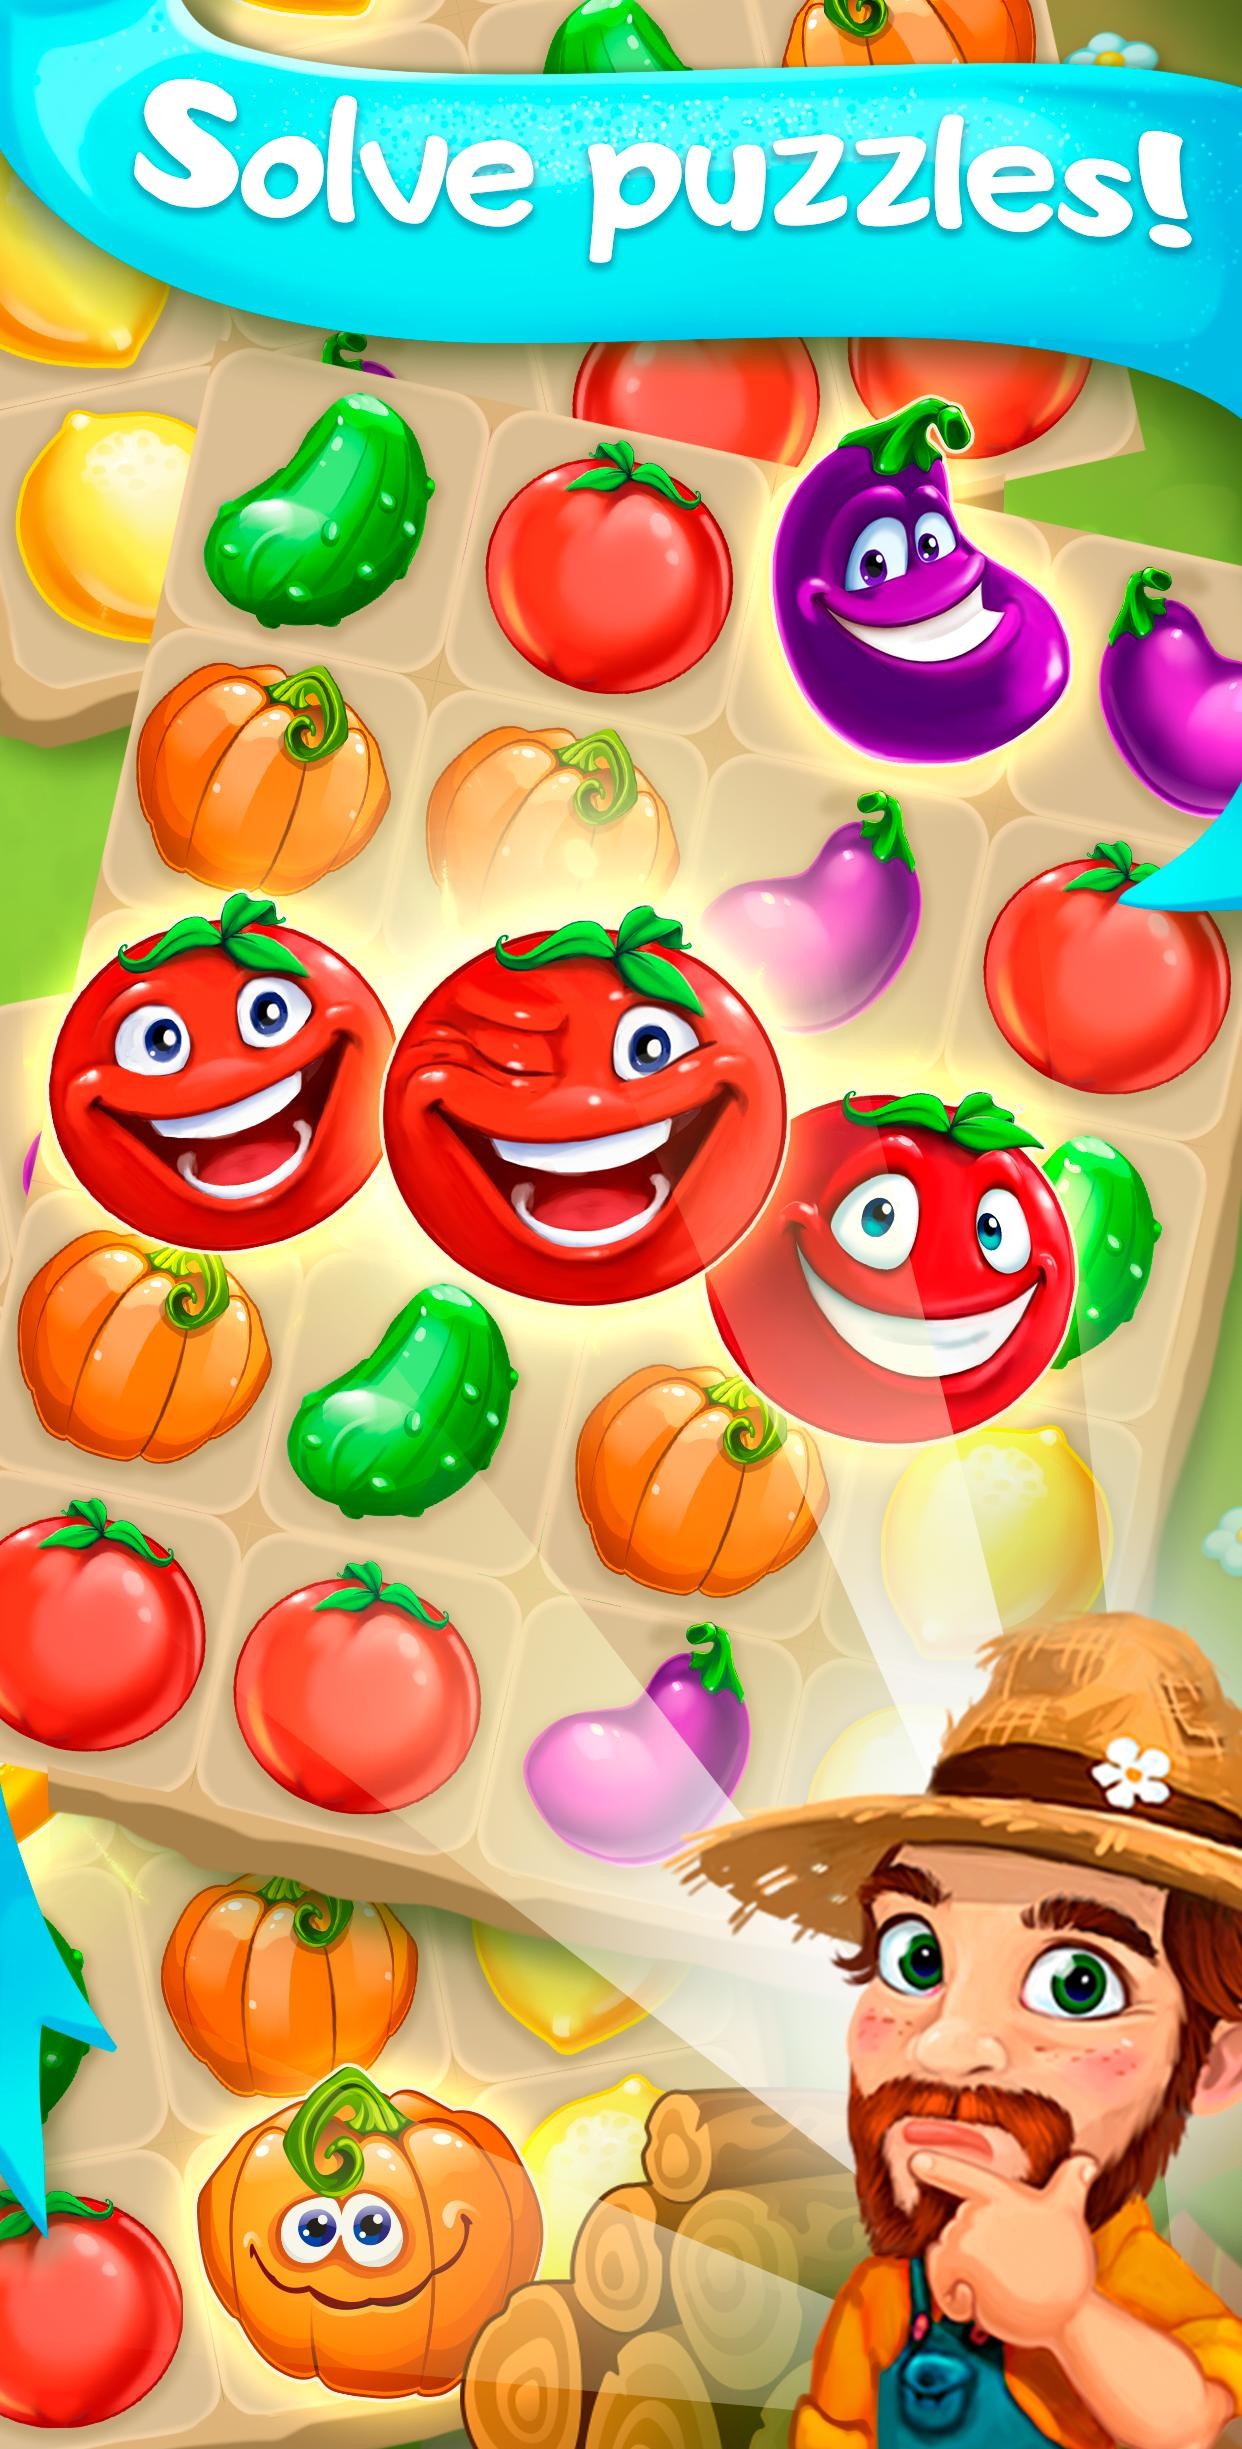 Funny Farm match 3 Puzzle game 1.53.0 Screenshot 5